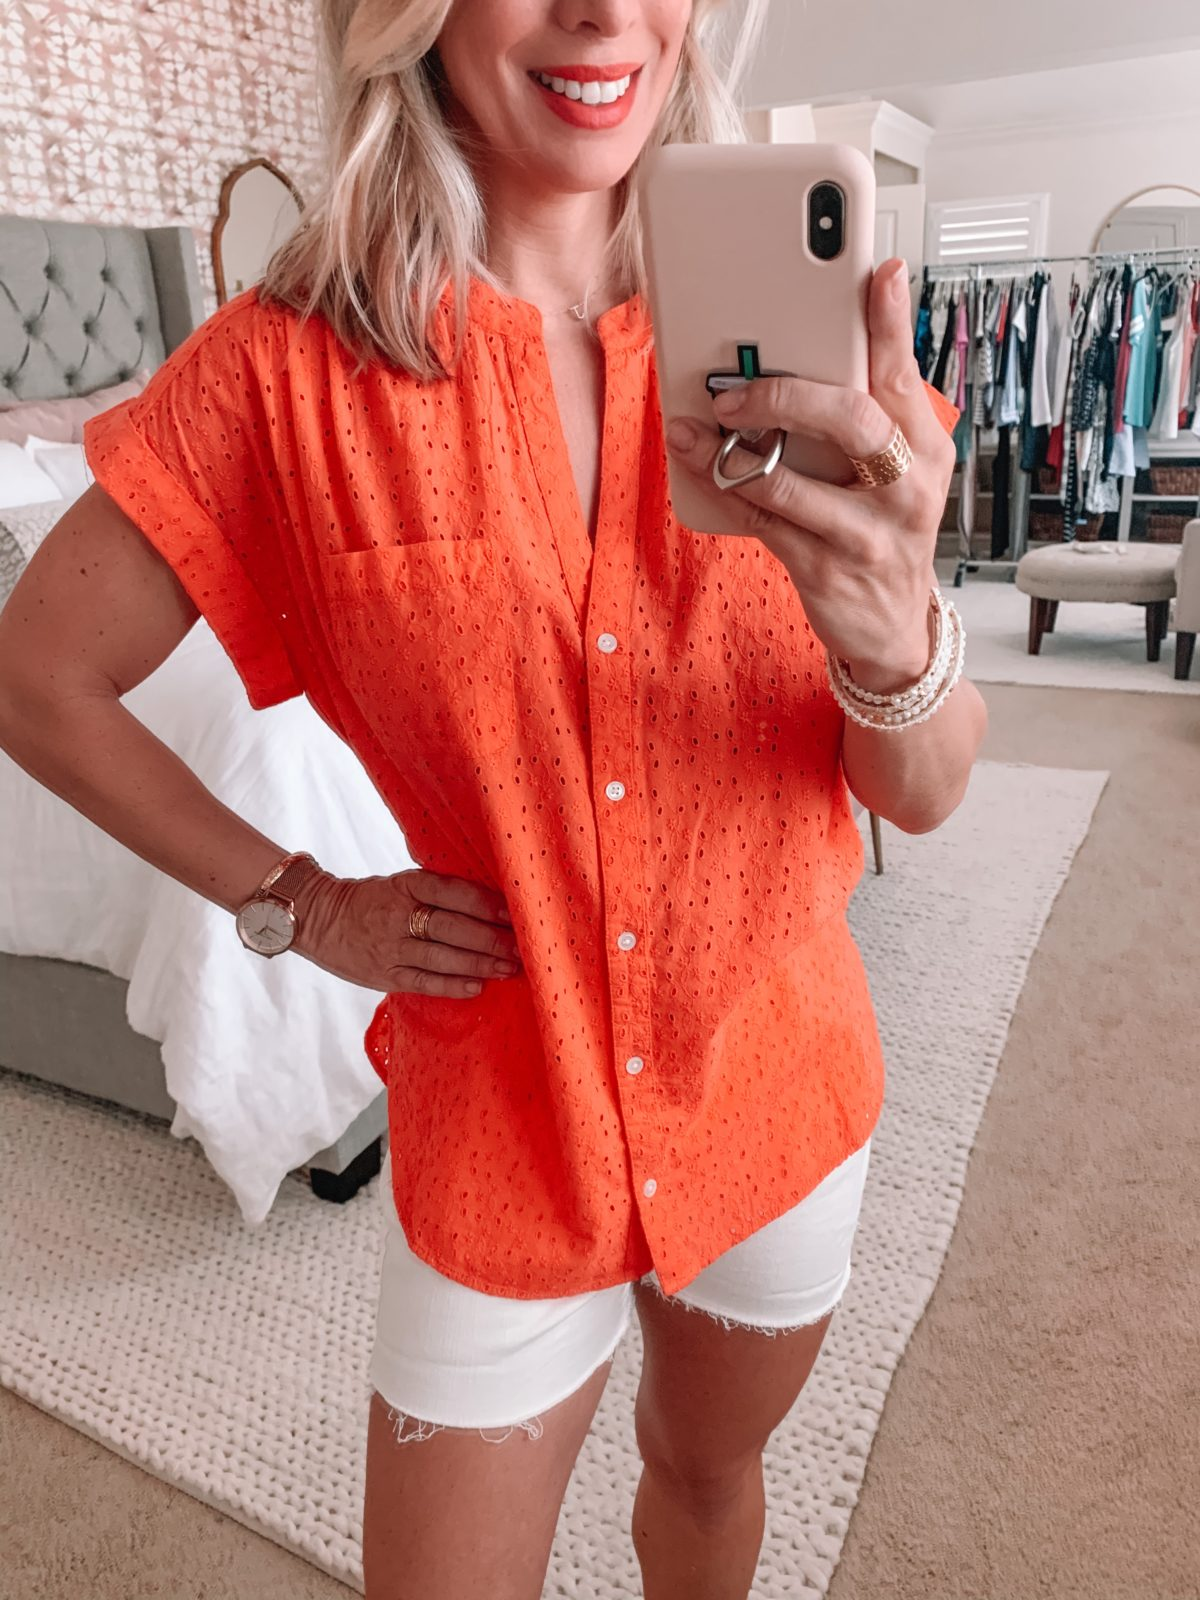 Amazon Fashion Finds, Eyelet Short Sleeved Top, White Denim Shorts